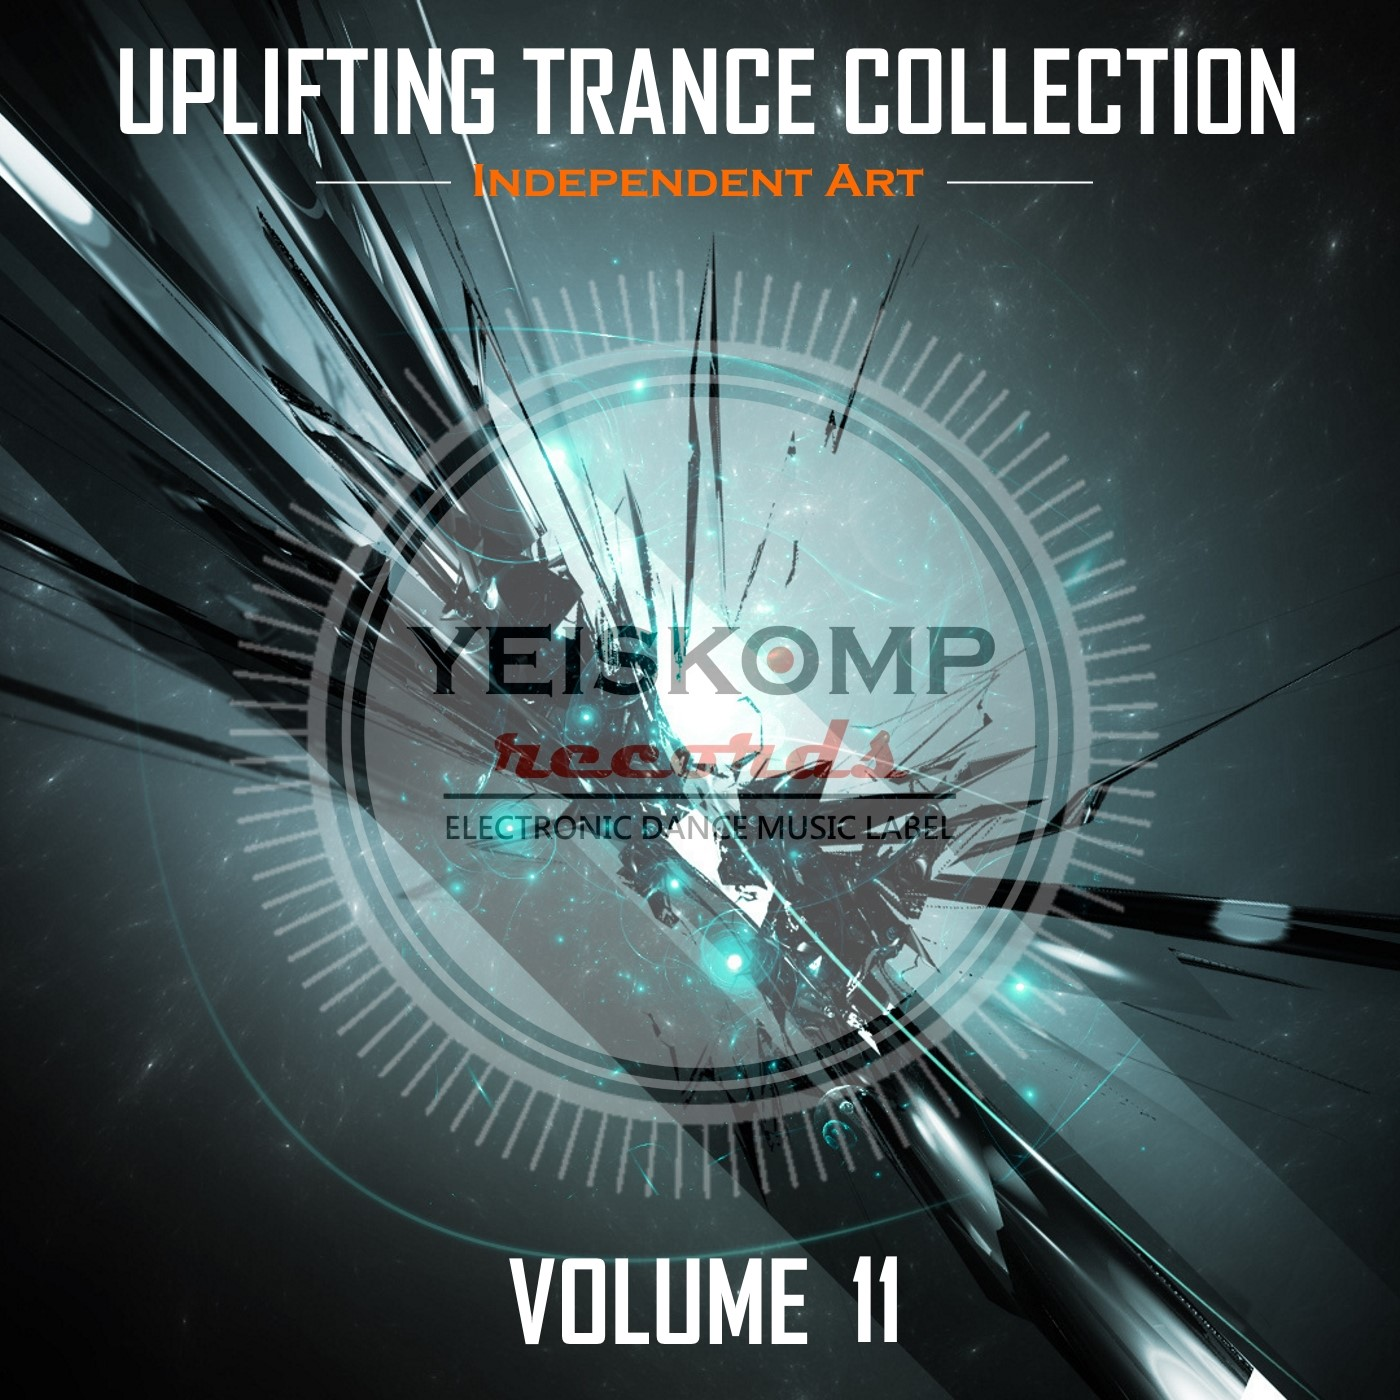 Uplifting Trance Collection by Independent Art, Vol. 11